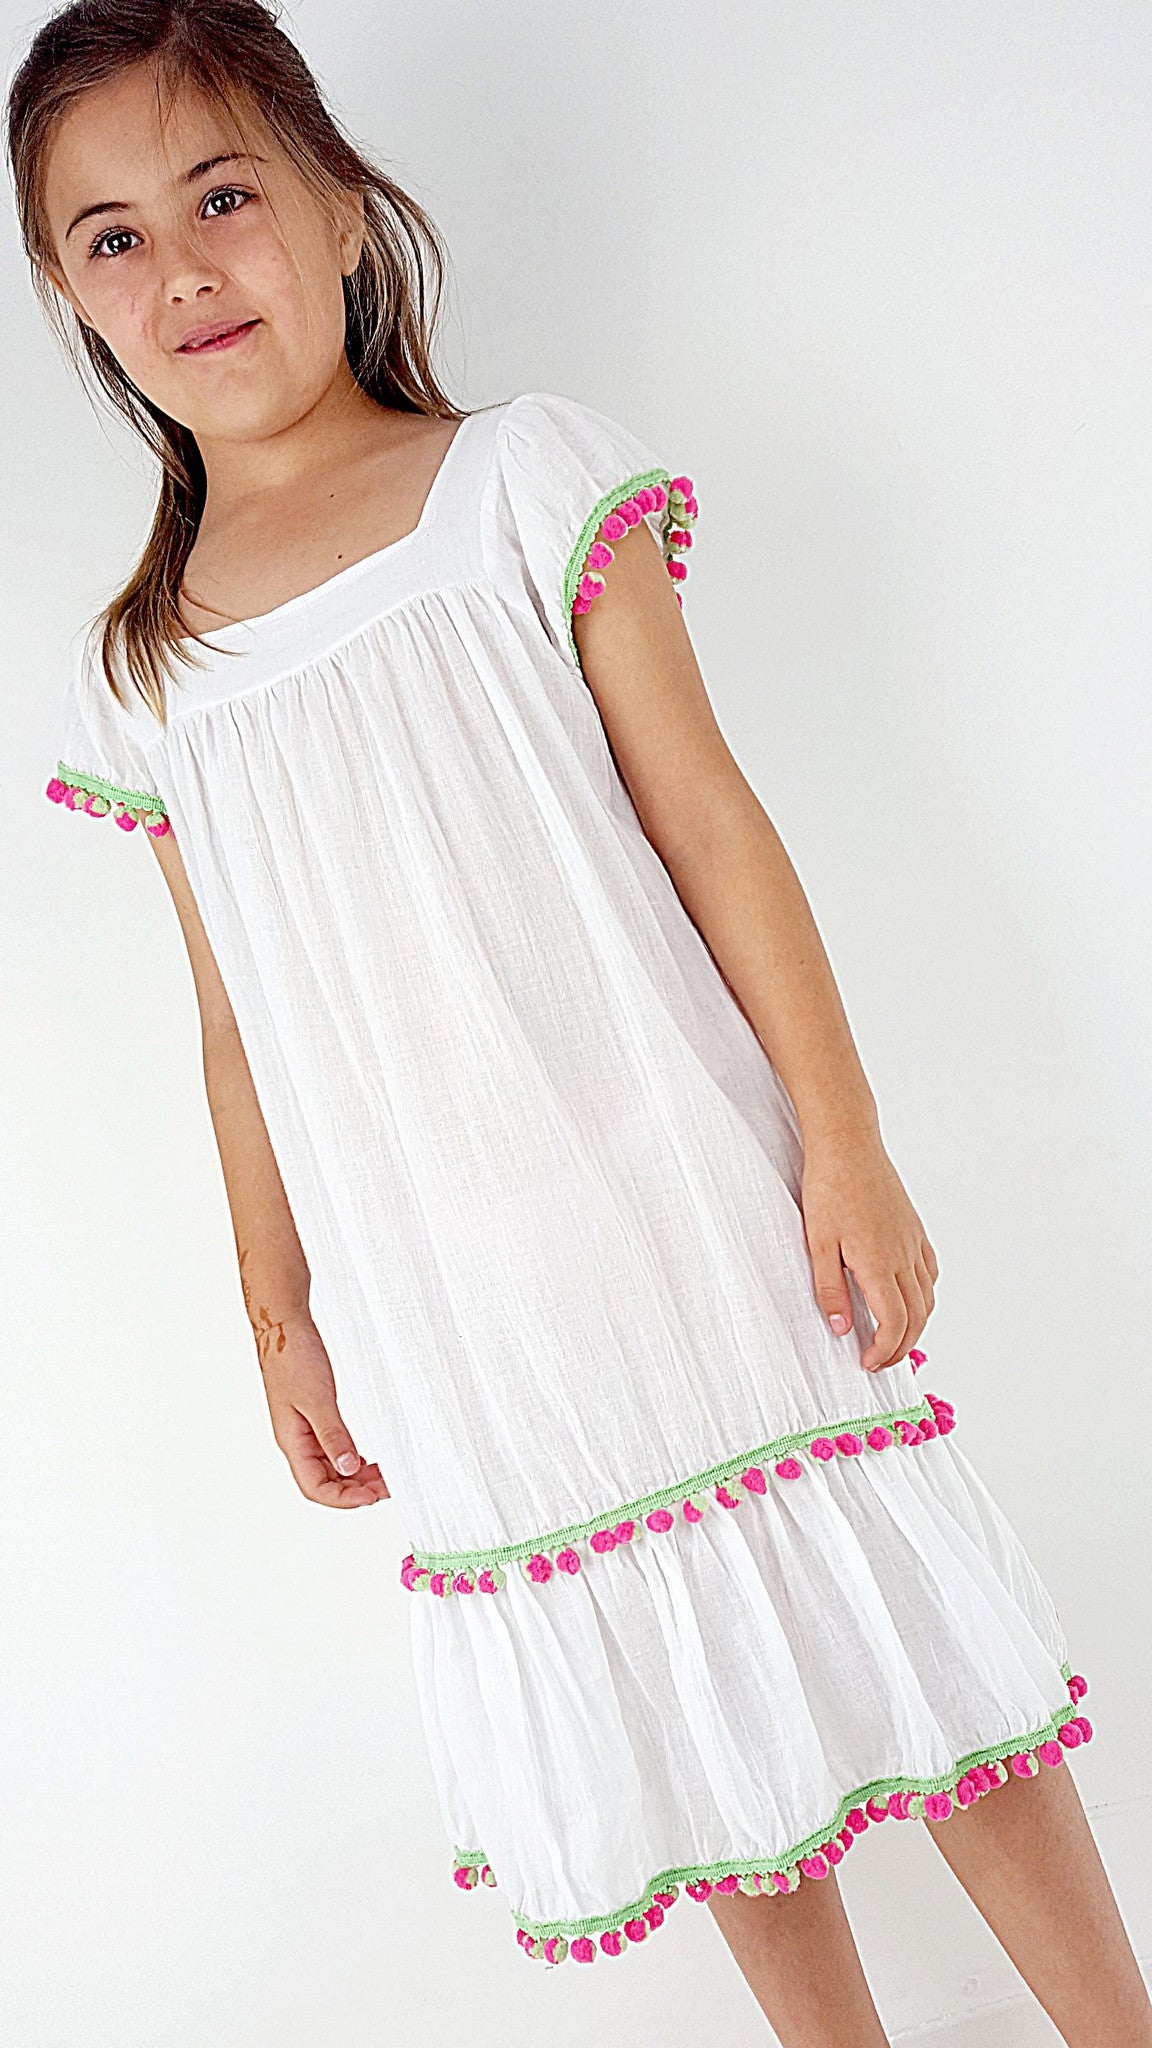 You searched for: white cotton dress! Etsy is the home to thousands of handmade, vintage, and one-of-a-kind products and gifts related to your search. No matter what you're looking for or where you are in the world, our global marketplace of sellers can help you find unique and affordable options. Let's get started!